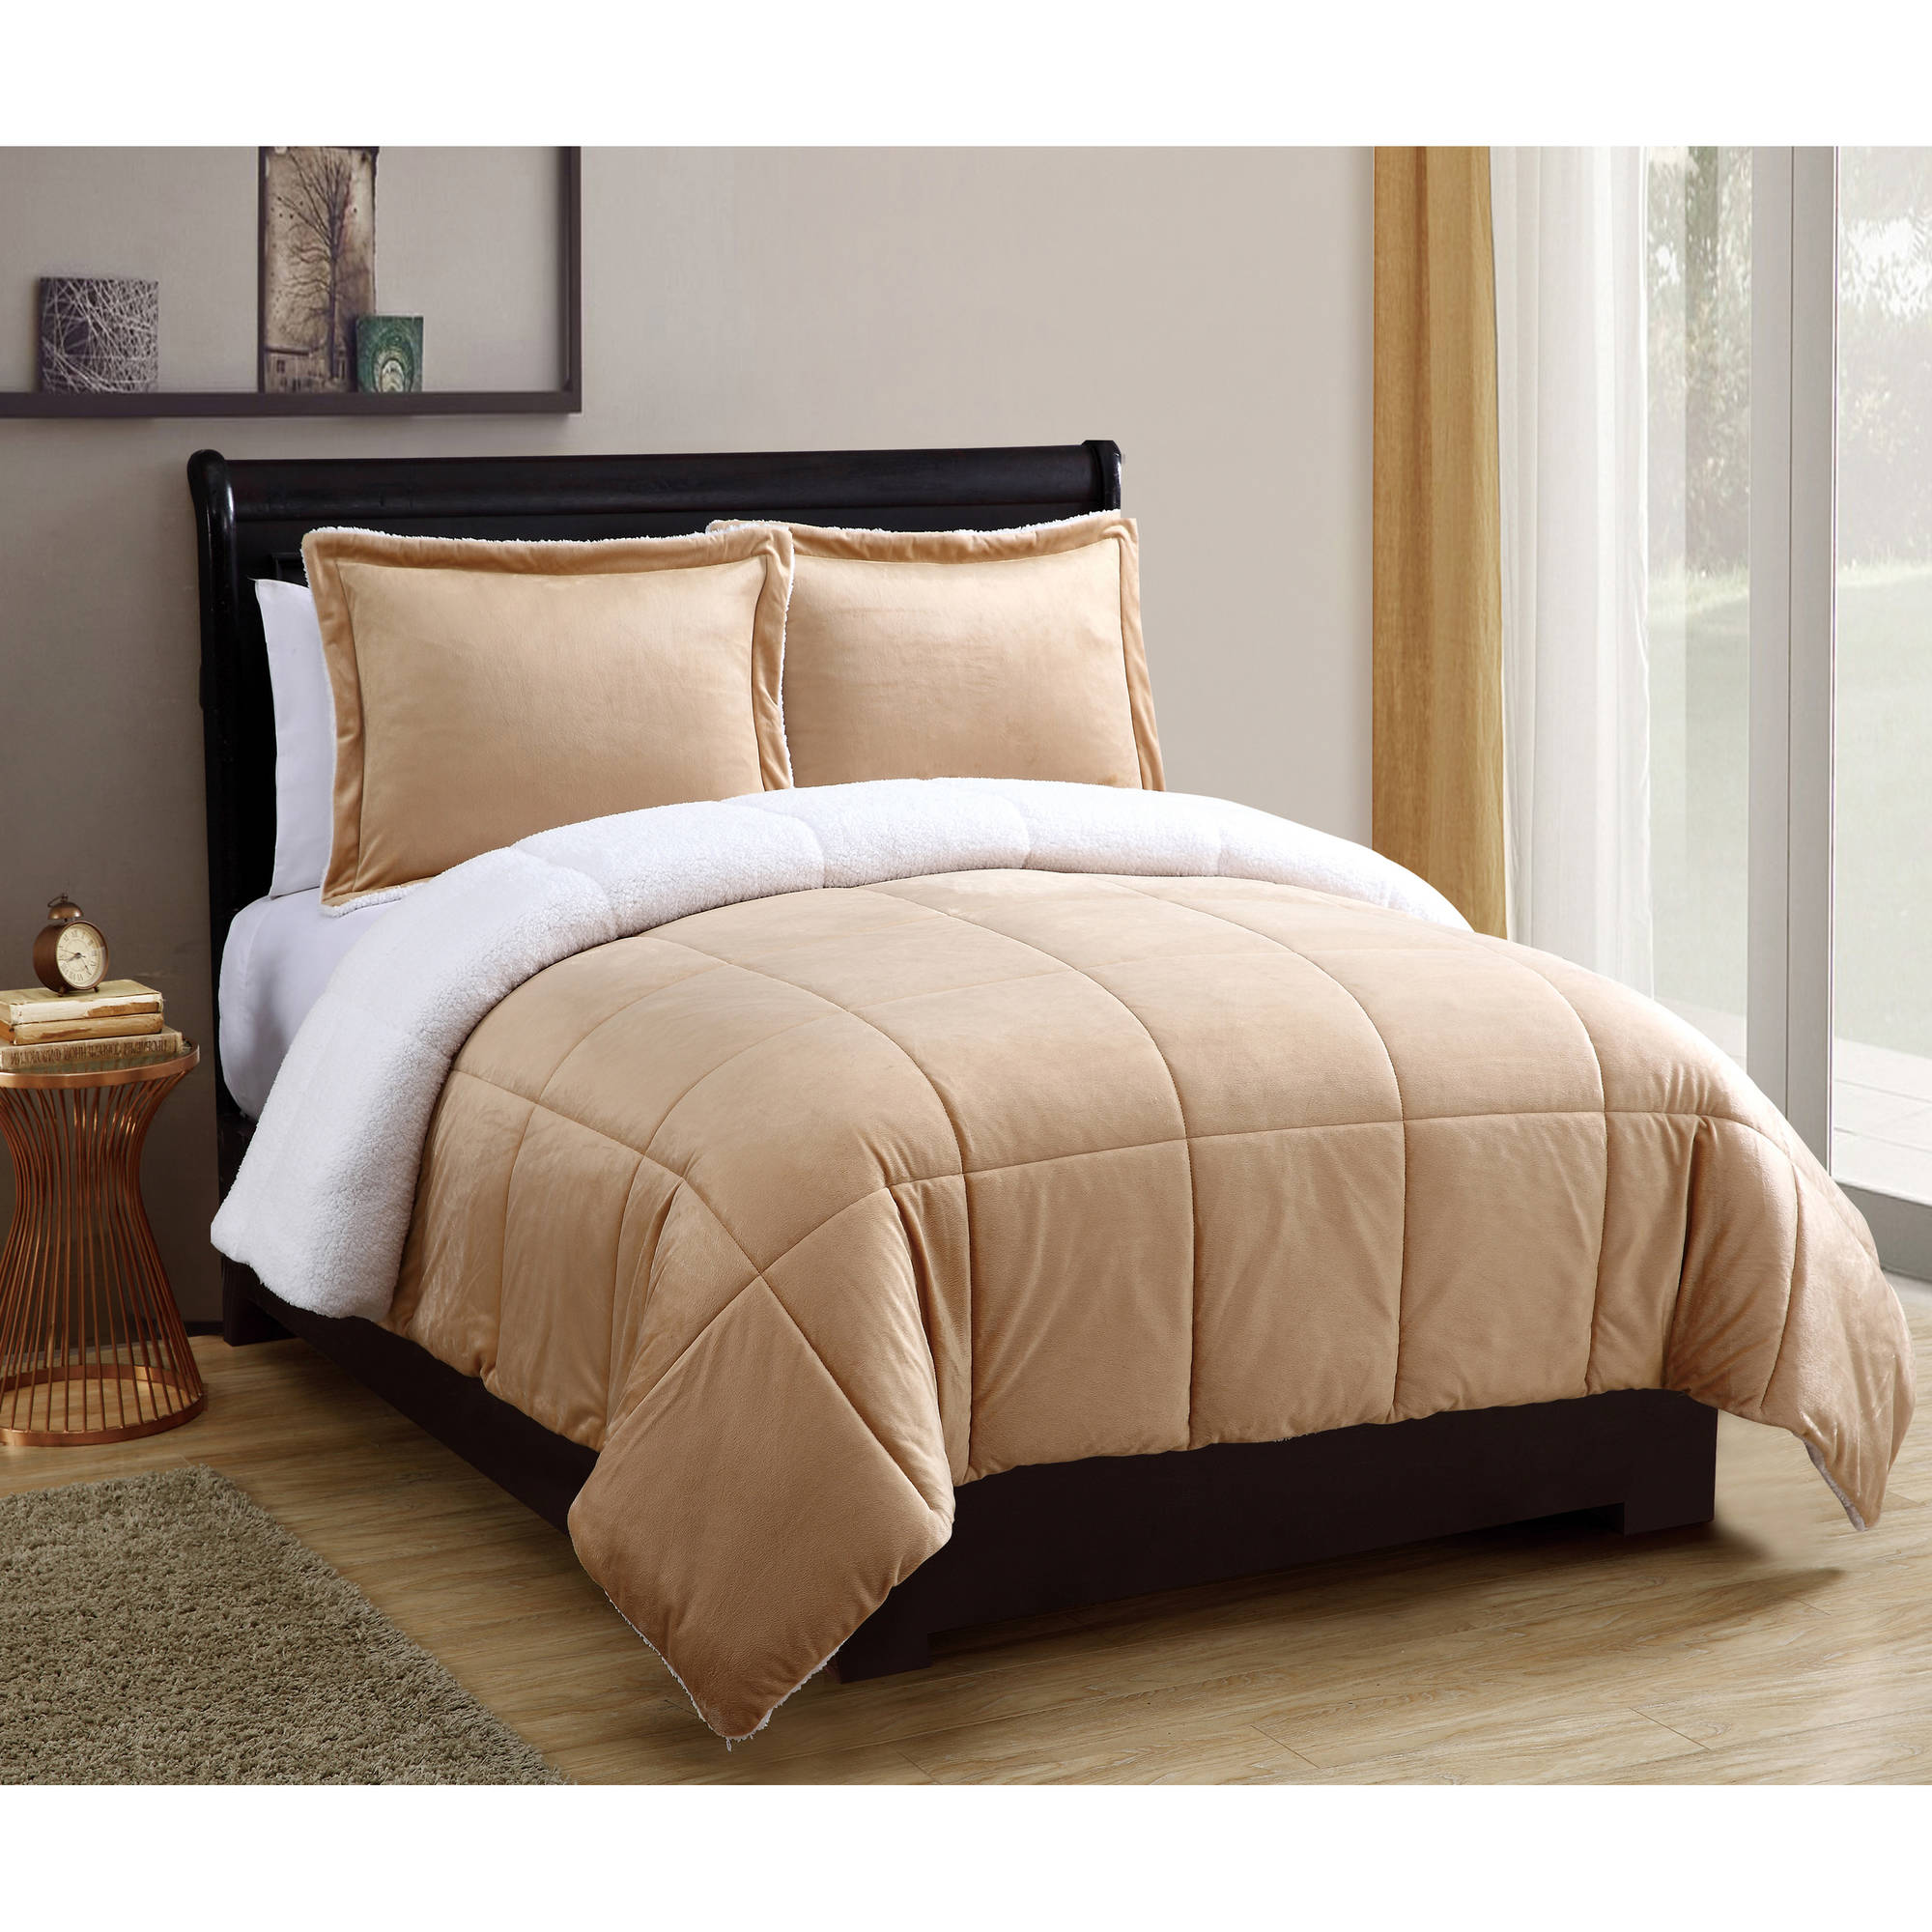 VCNY Home Solid Micro Mink Sherpa Box Stitched Reversible Bedding Comforter Set, Multiple Sizes and Colors Available